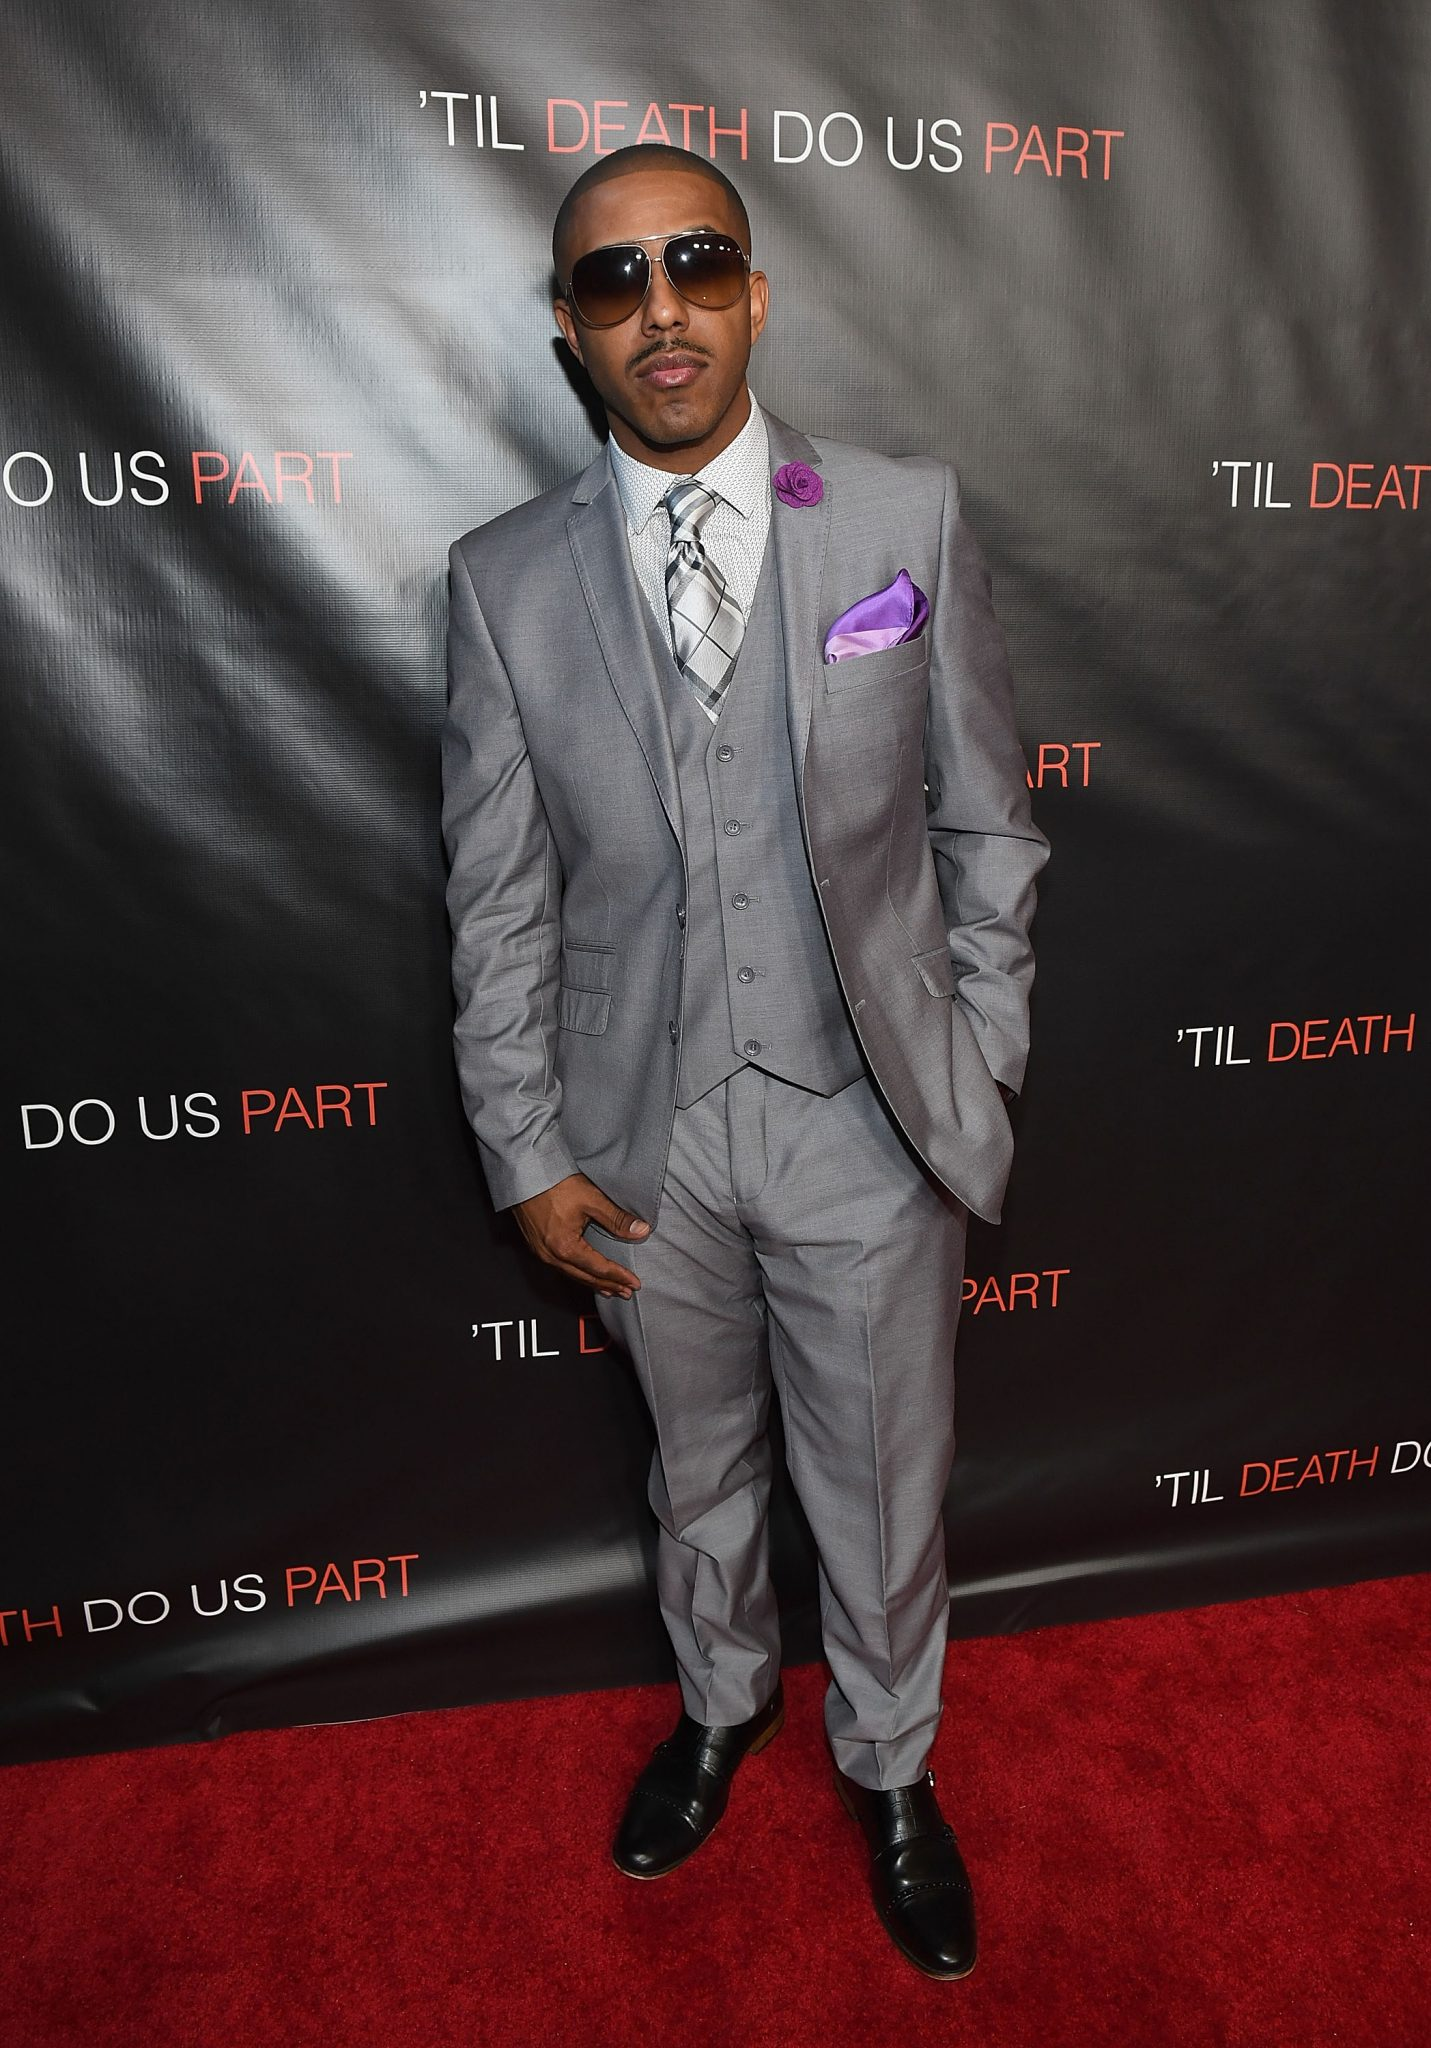 Till Death Do Us Part Red Carpet/Advance Screening In Atlanta